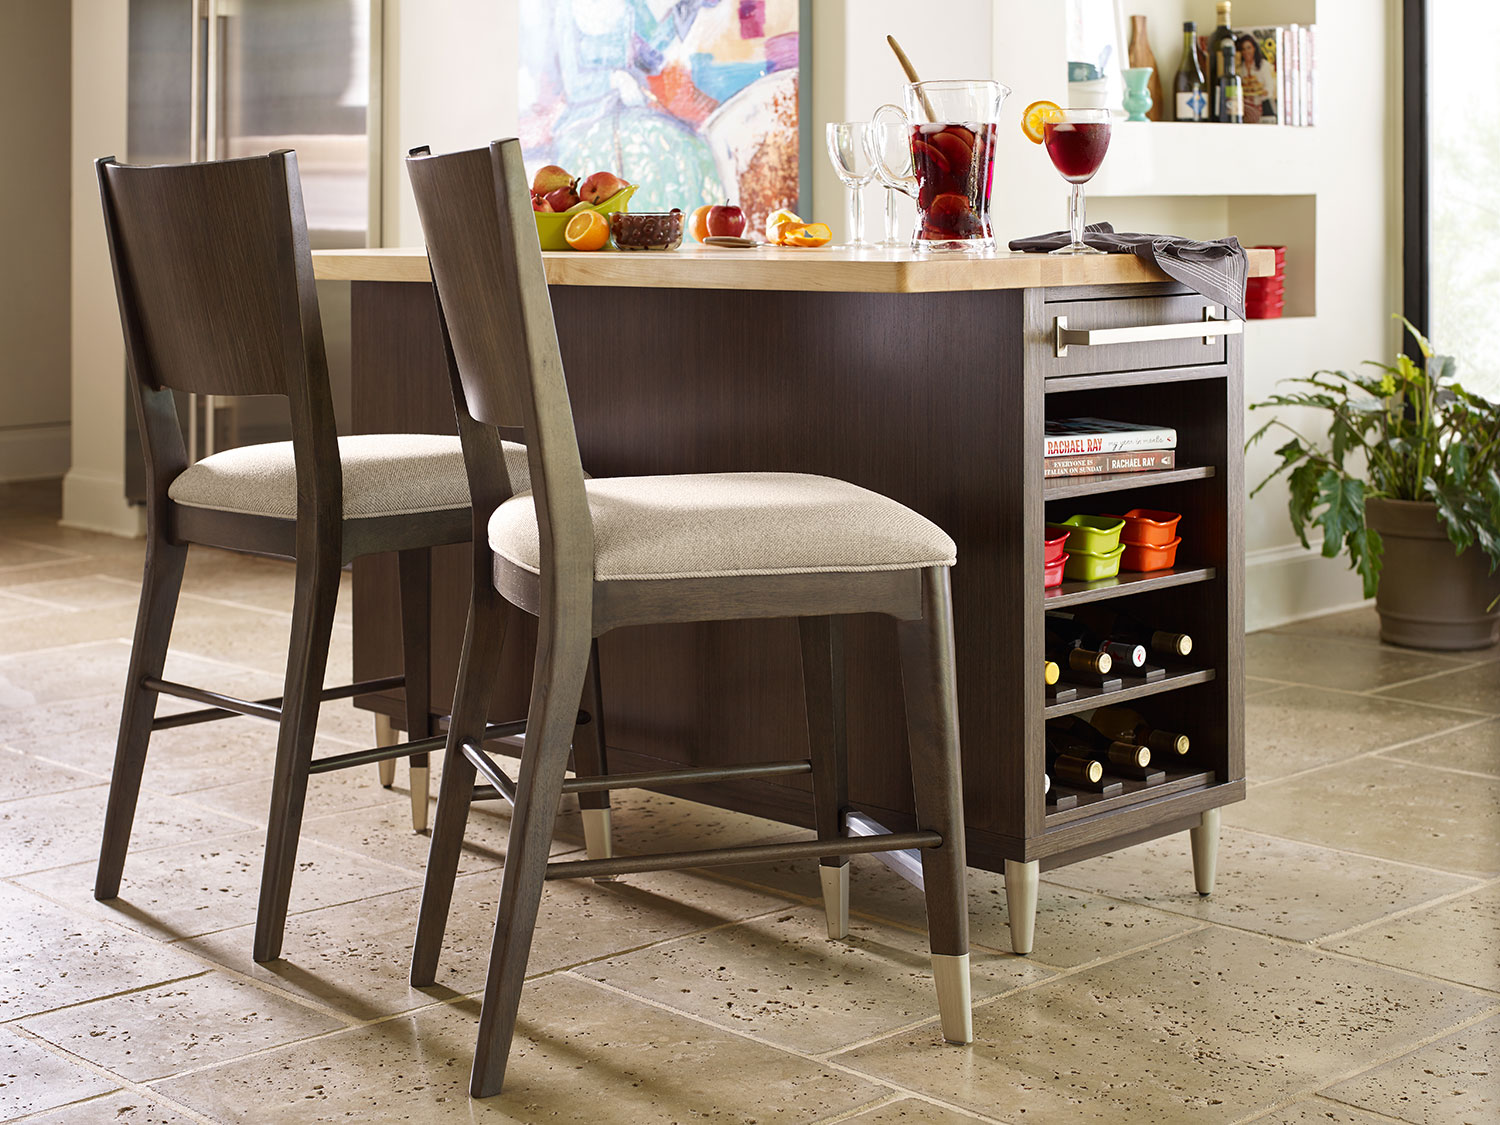 Rachael Ray Soho Kitchen Island w/ a stool - Ash Brown